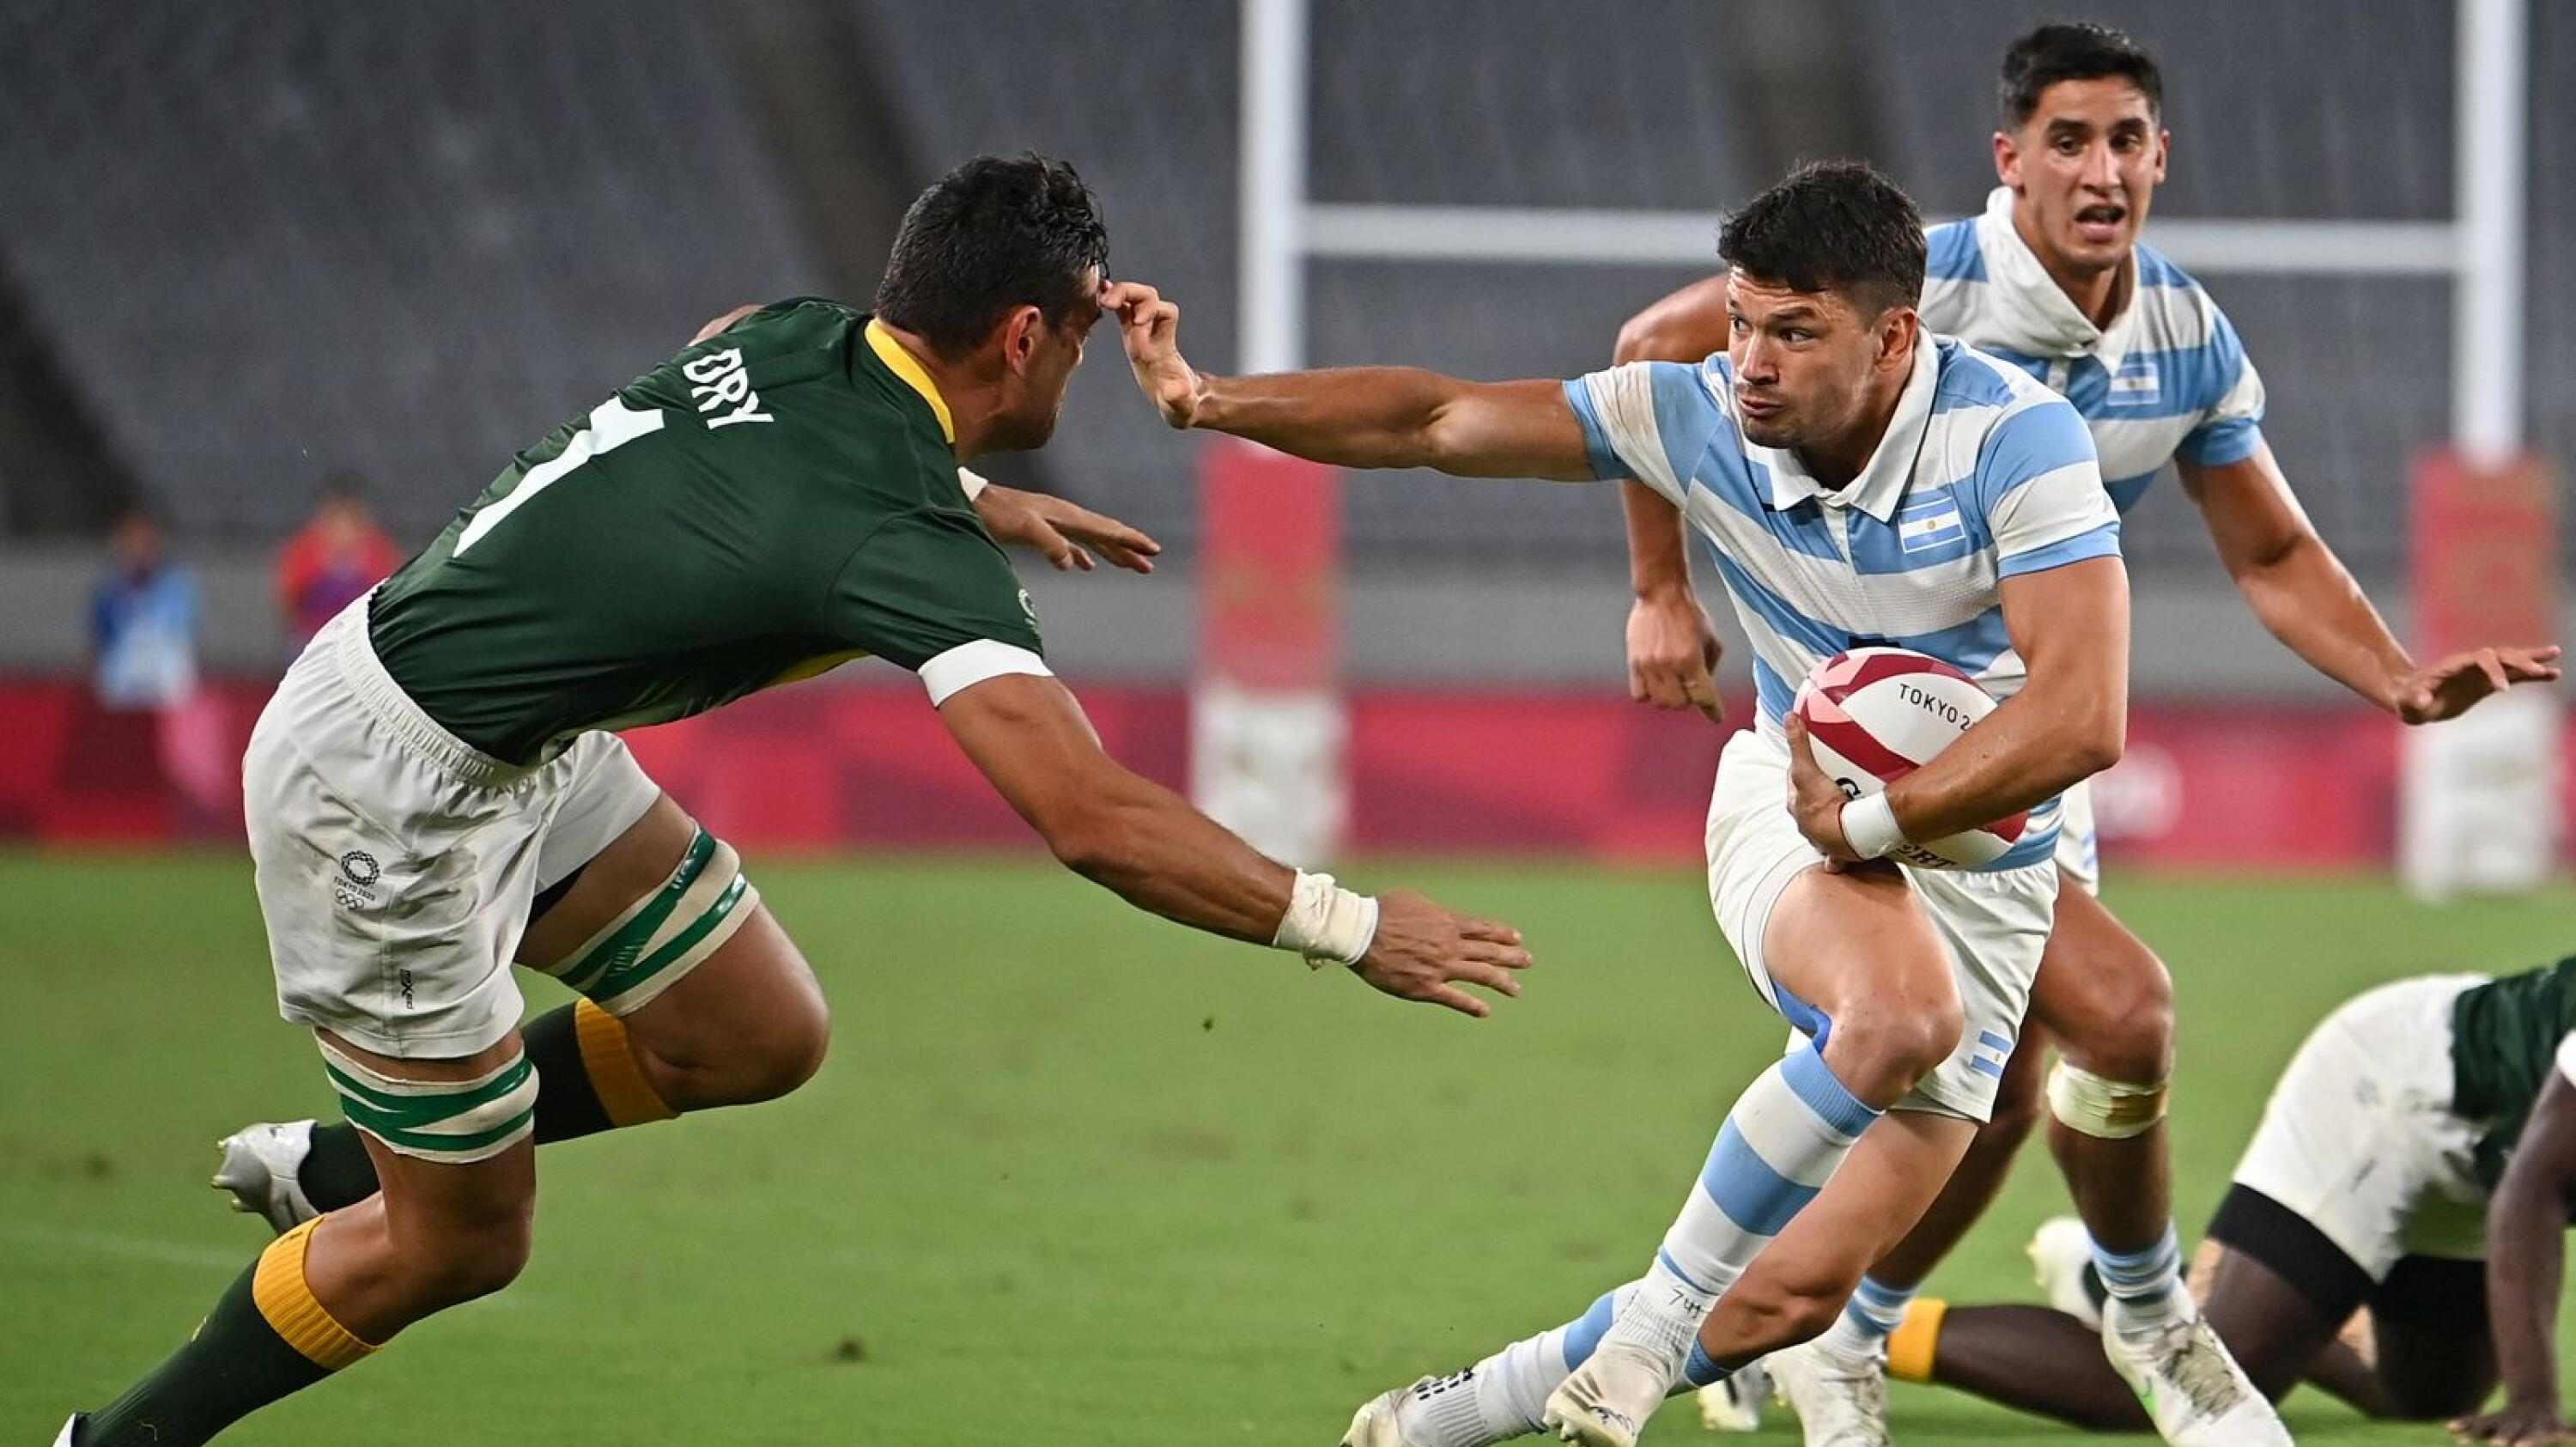 Argentina's Lautaro Bazan Velez (front R) evades a tackle by South Africa's Chris Dry in the men's Tokyo Olympics quarter-final rugby sevens match at the Tokyo Stadium in Tokyo on Tuesday